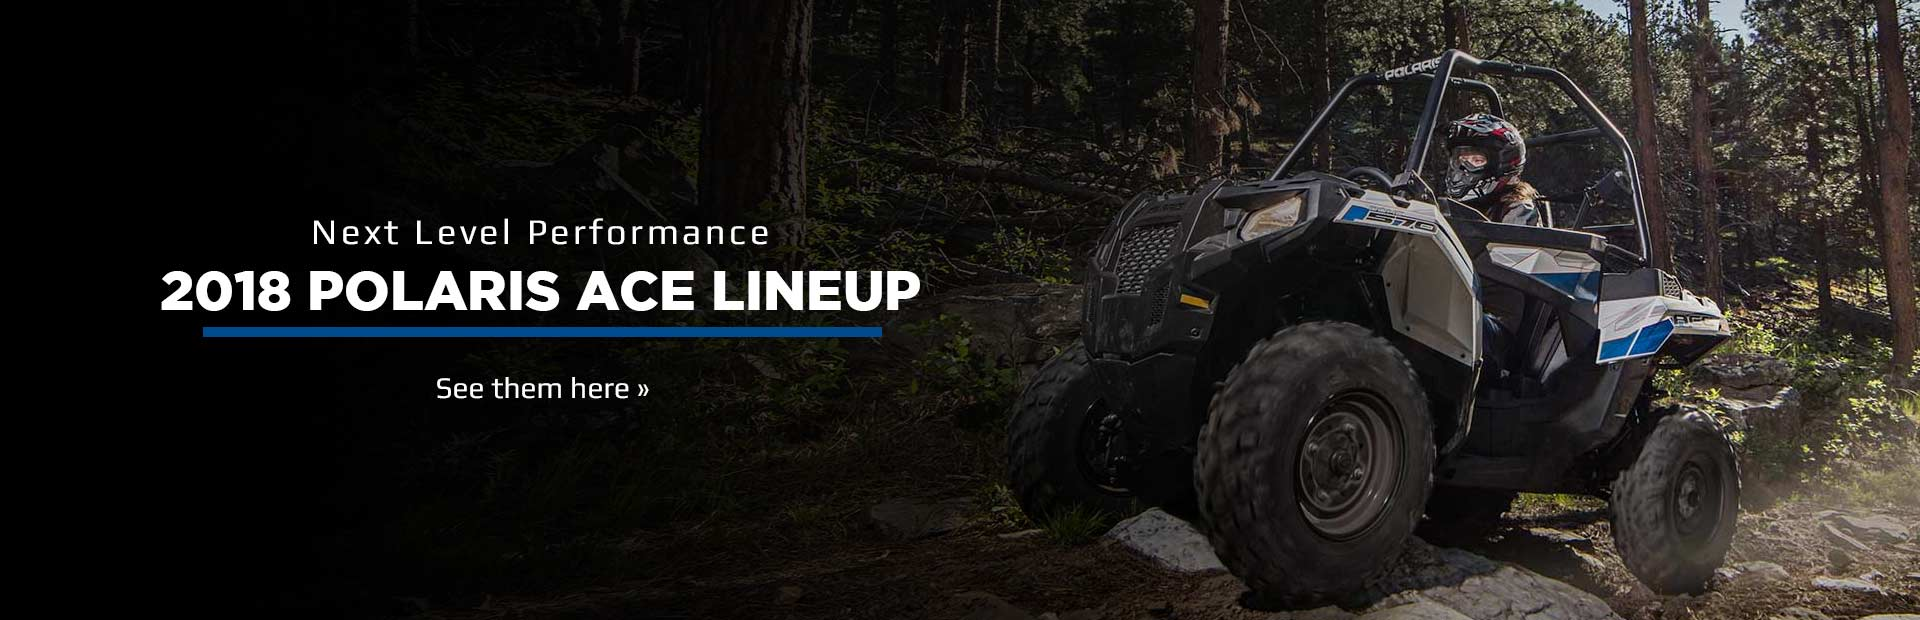 2018 Polaris ACE Lineup: Click here to view the models.